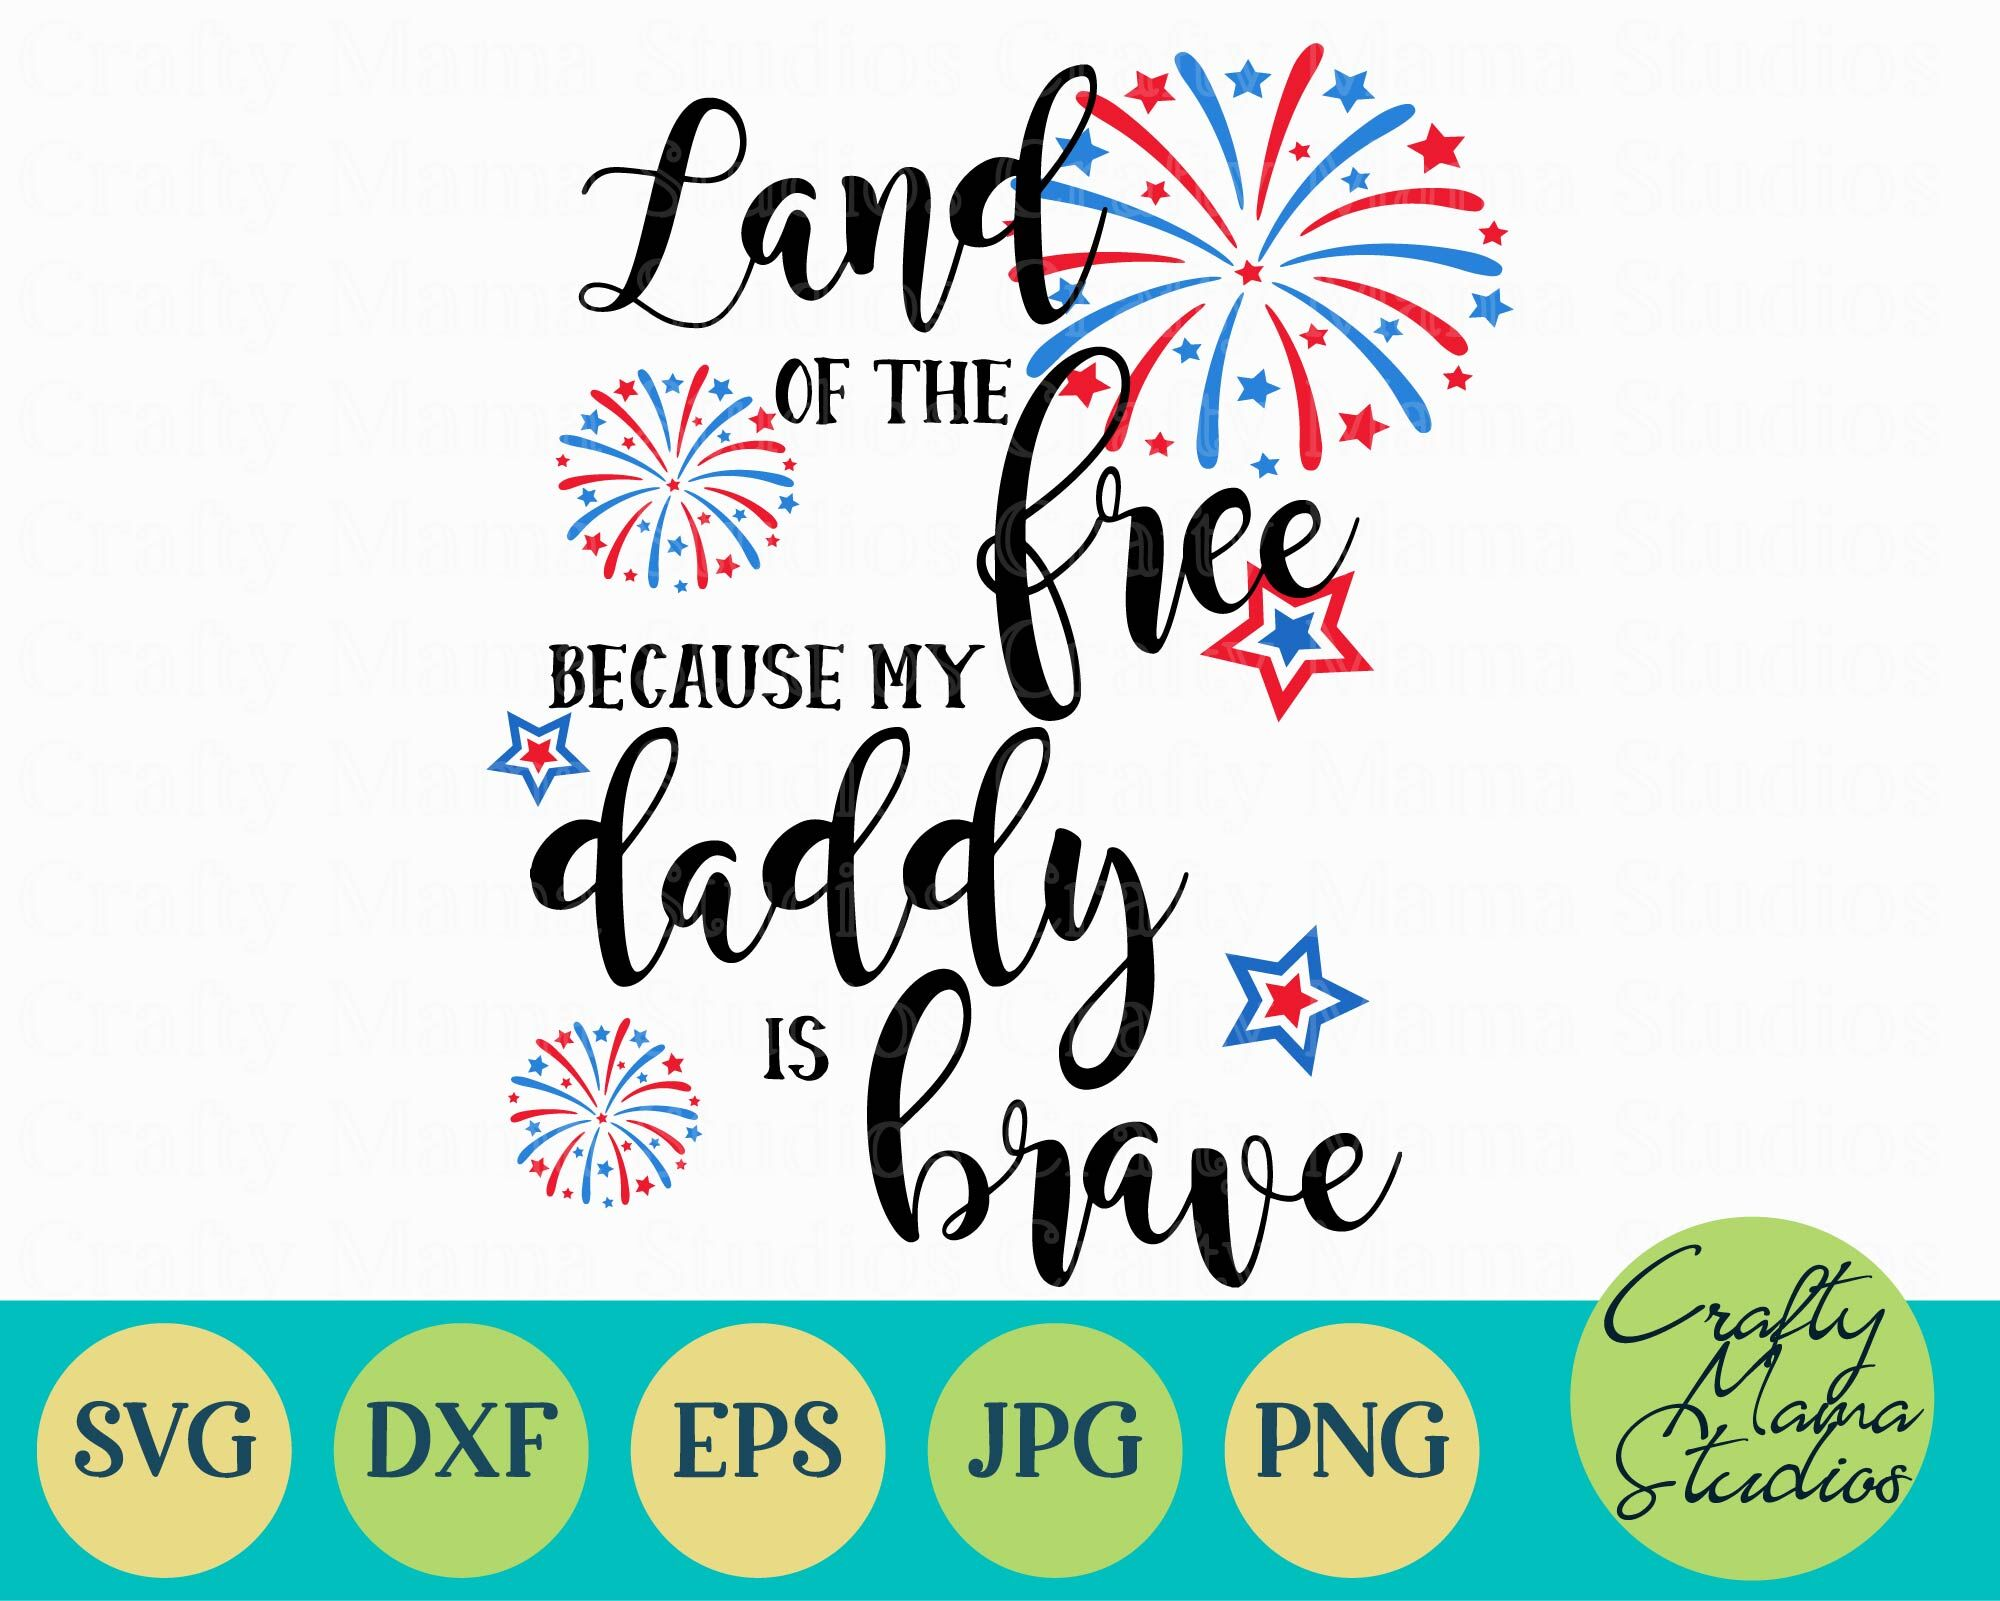 Free Awesome Svg Animation For Your Inspiration Dad Shirt Svg Free